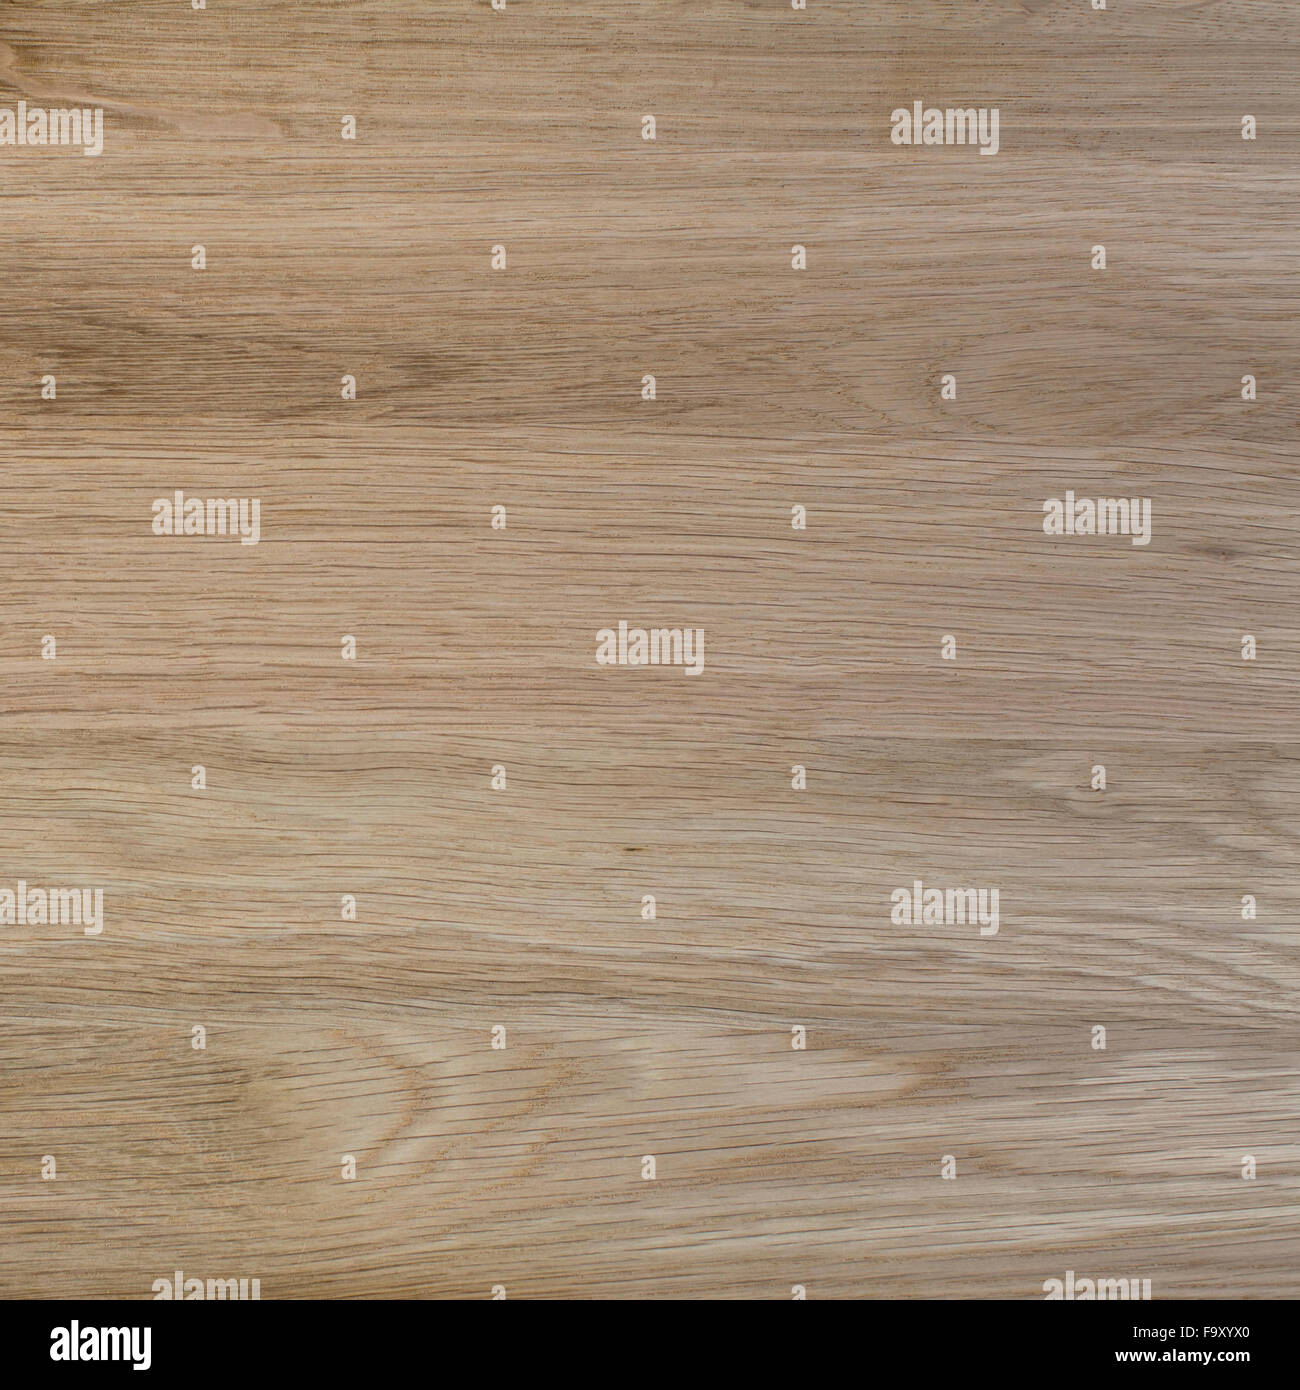 Texture of oak wood, expensive wood. - Stock Image